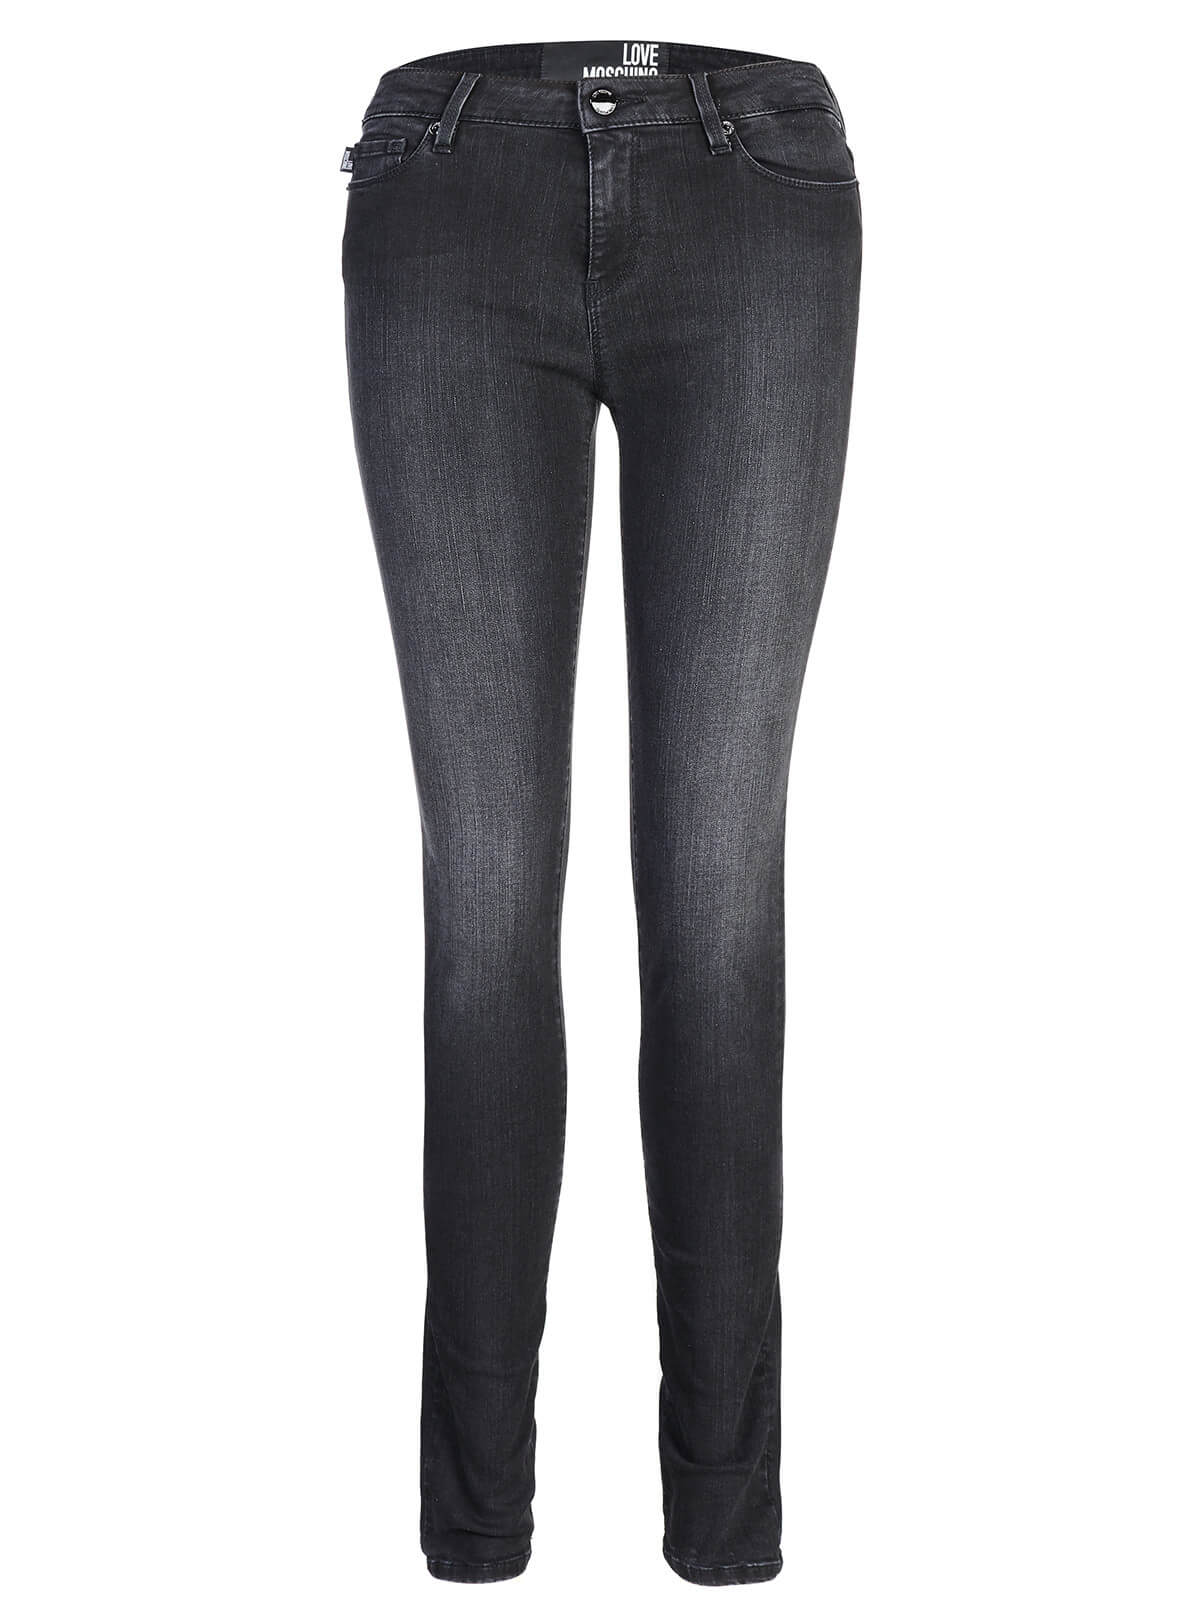 Love Moschino Jeans Black by Love Moschino